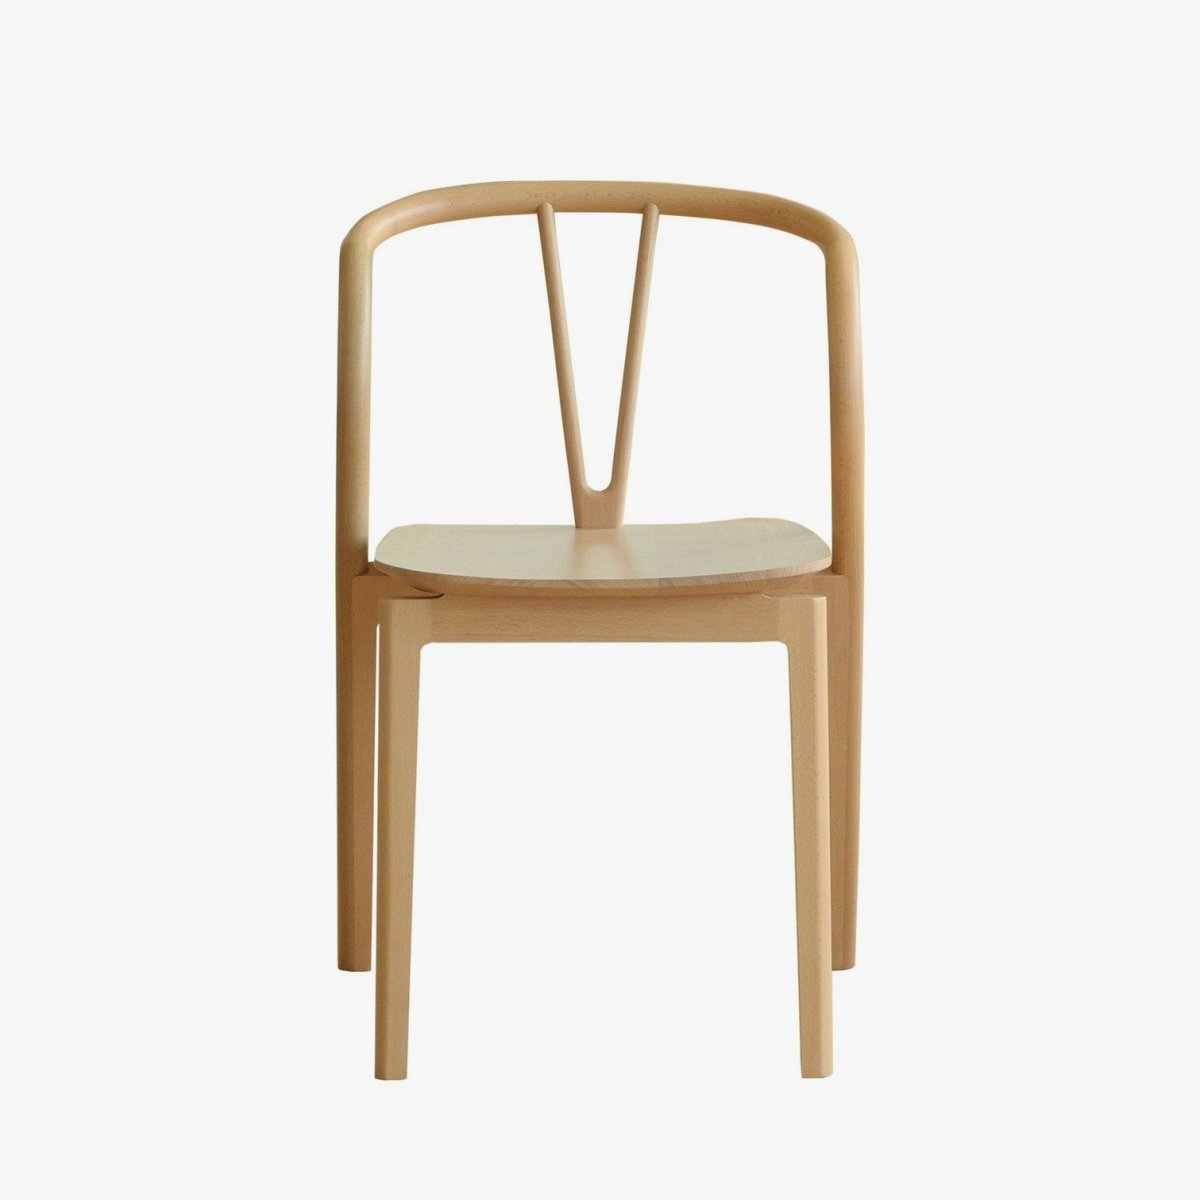 Flow Chair, front view.